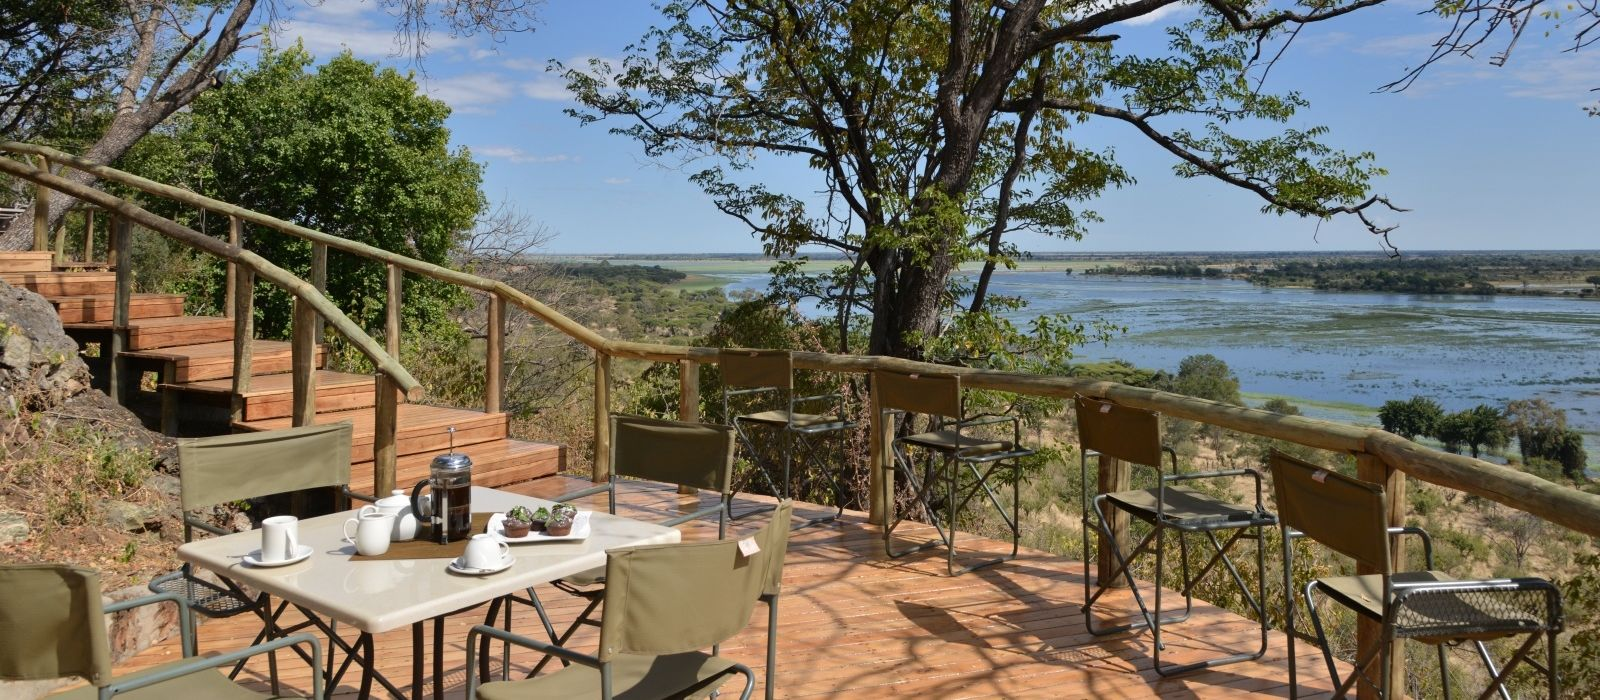 Hotel Muchenje Safari Lodge Botswana